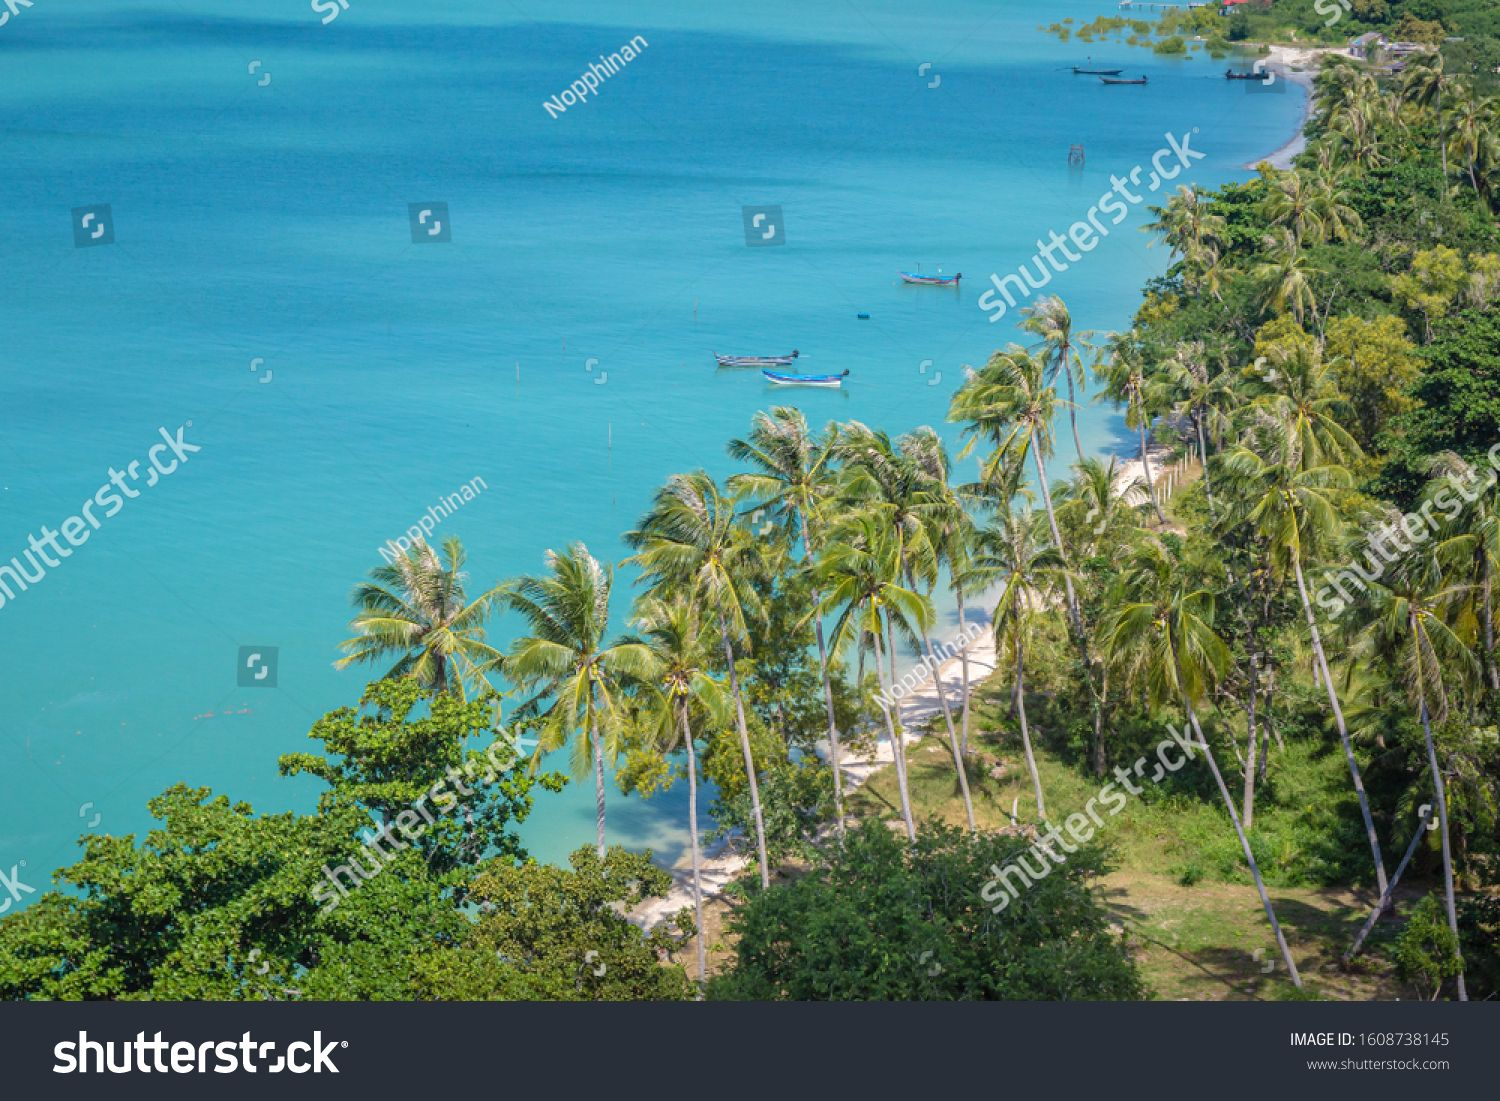 Landscape Nature Beautiful Ocean And Sand Beach With Tree In Surat Thani Thailand Top View Seascape Blue And Gree In 2020 Beautiful Ocean Nature Backgrounds Landscape